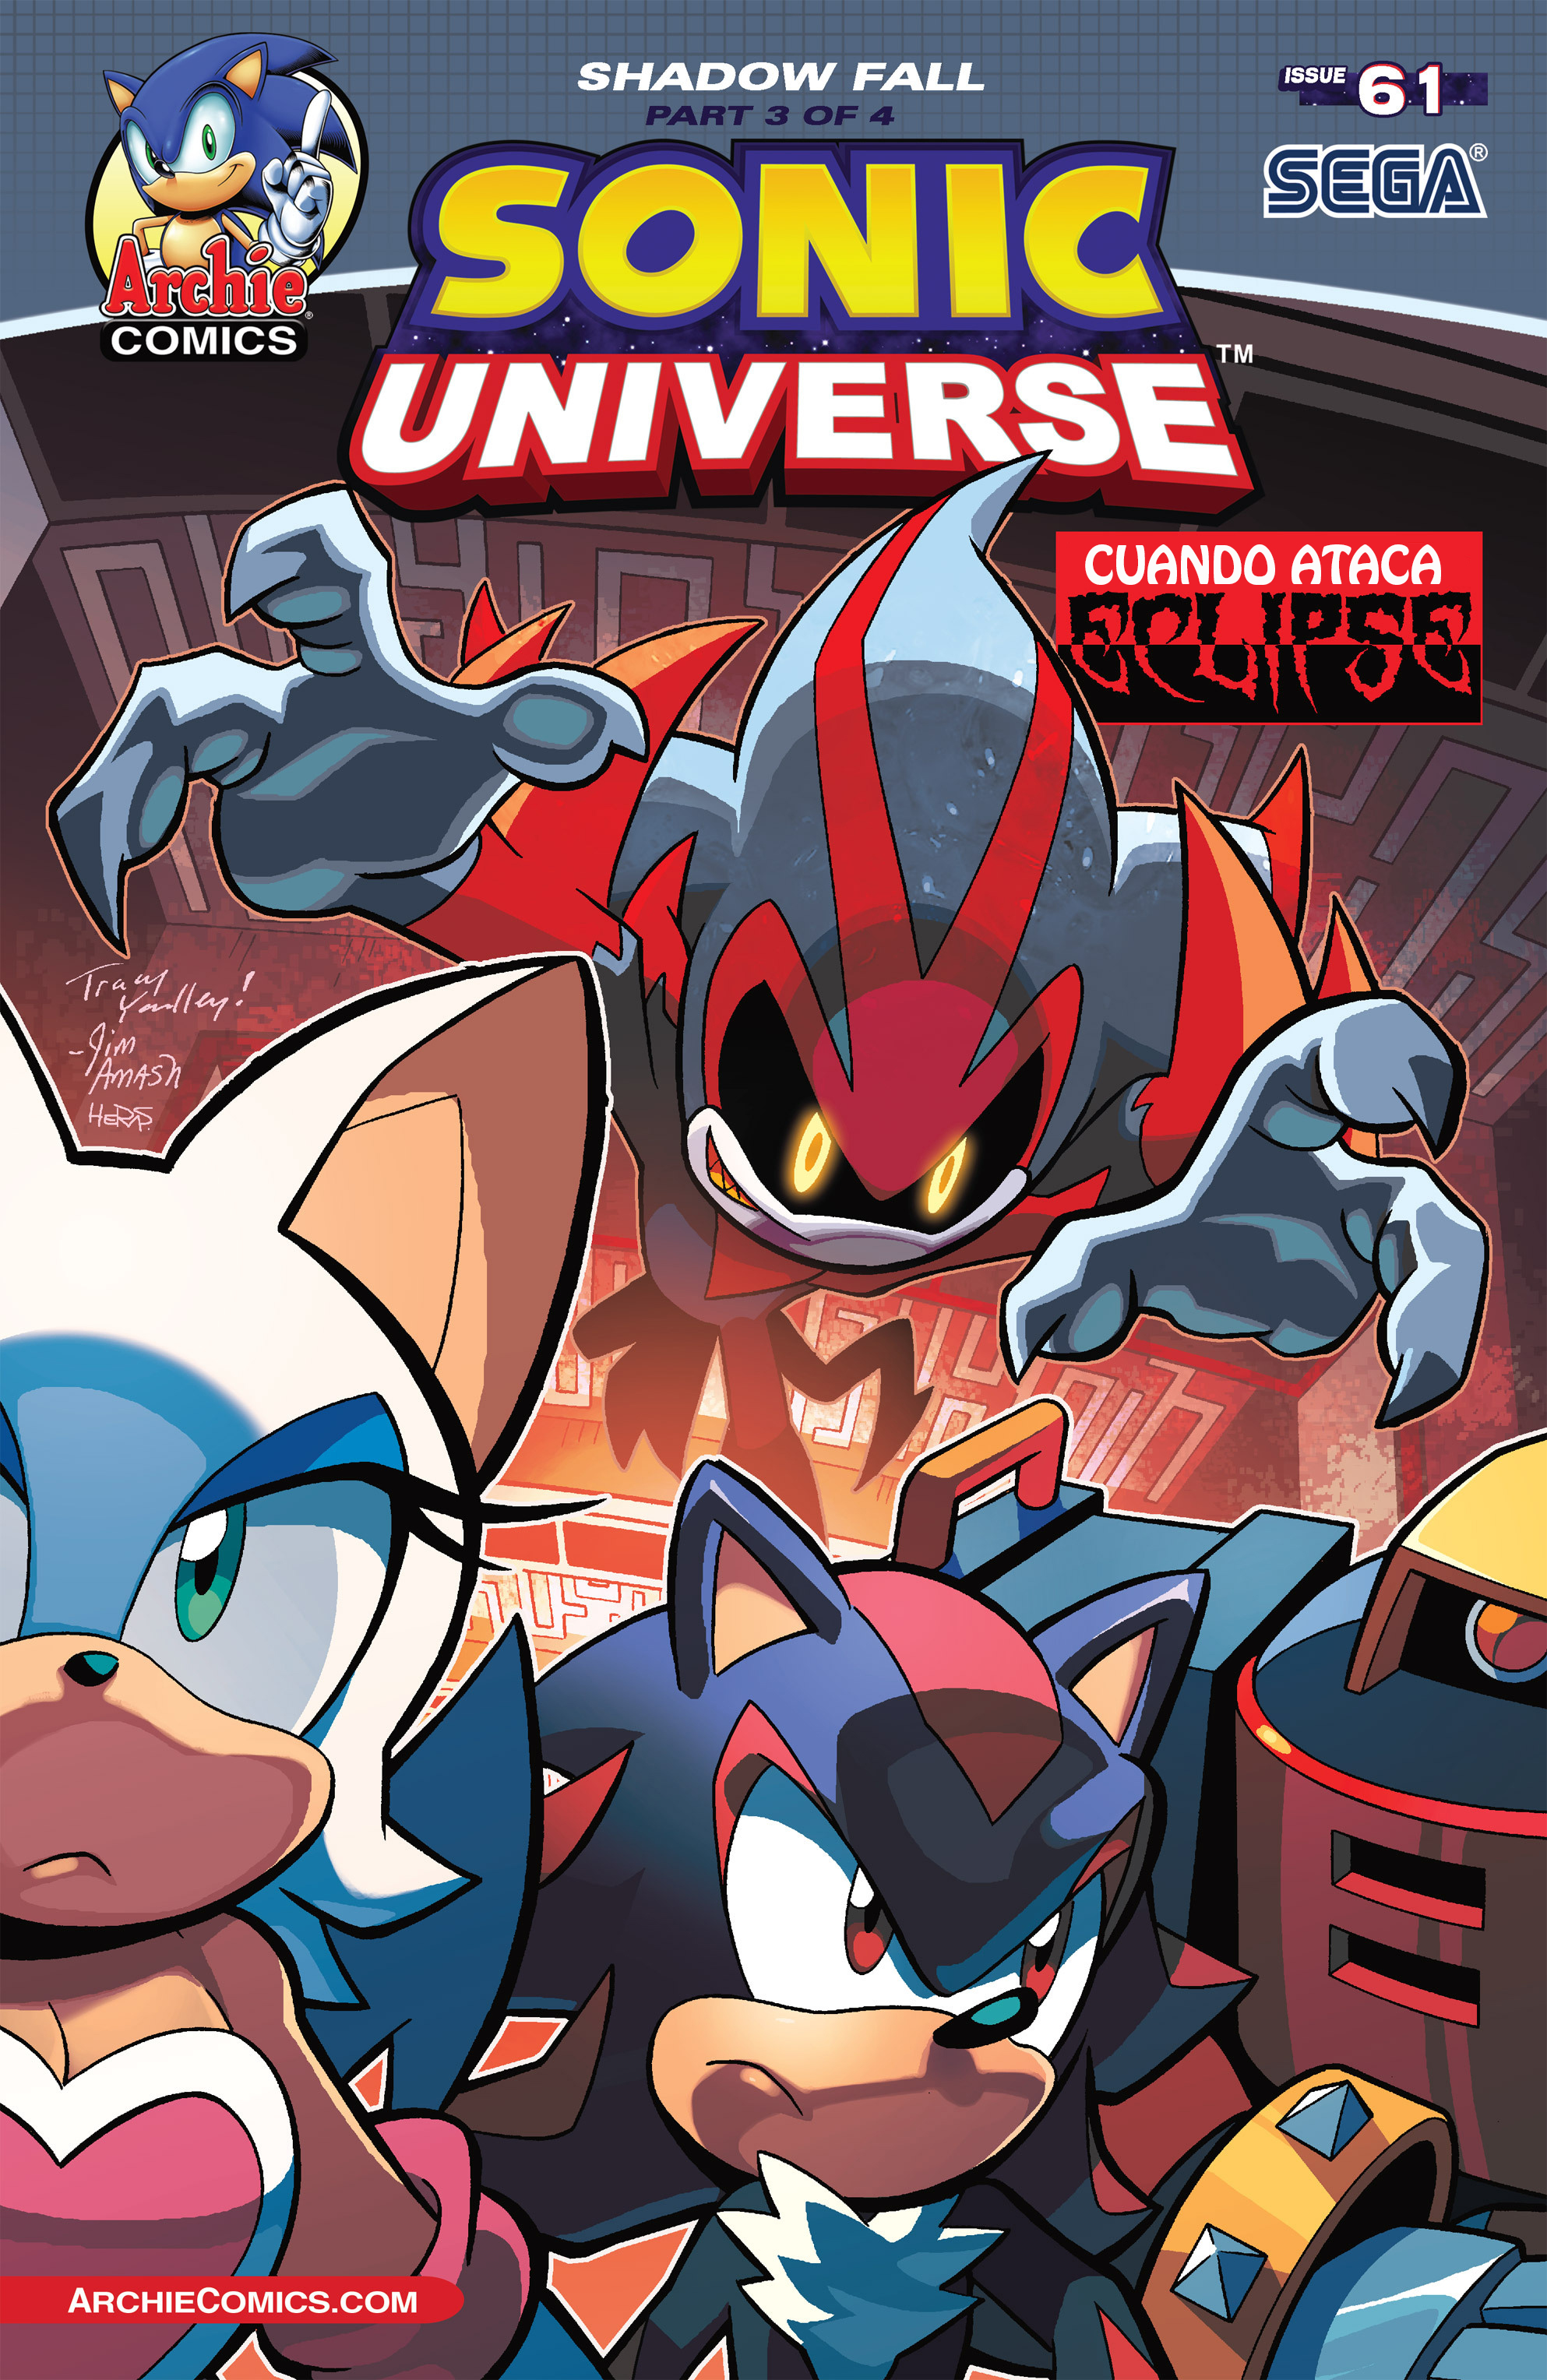 Sonic Universe Issue 61